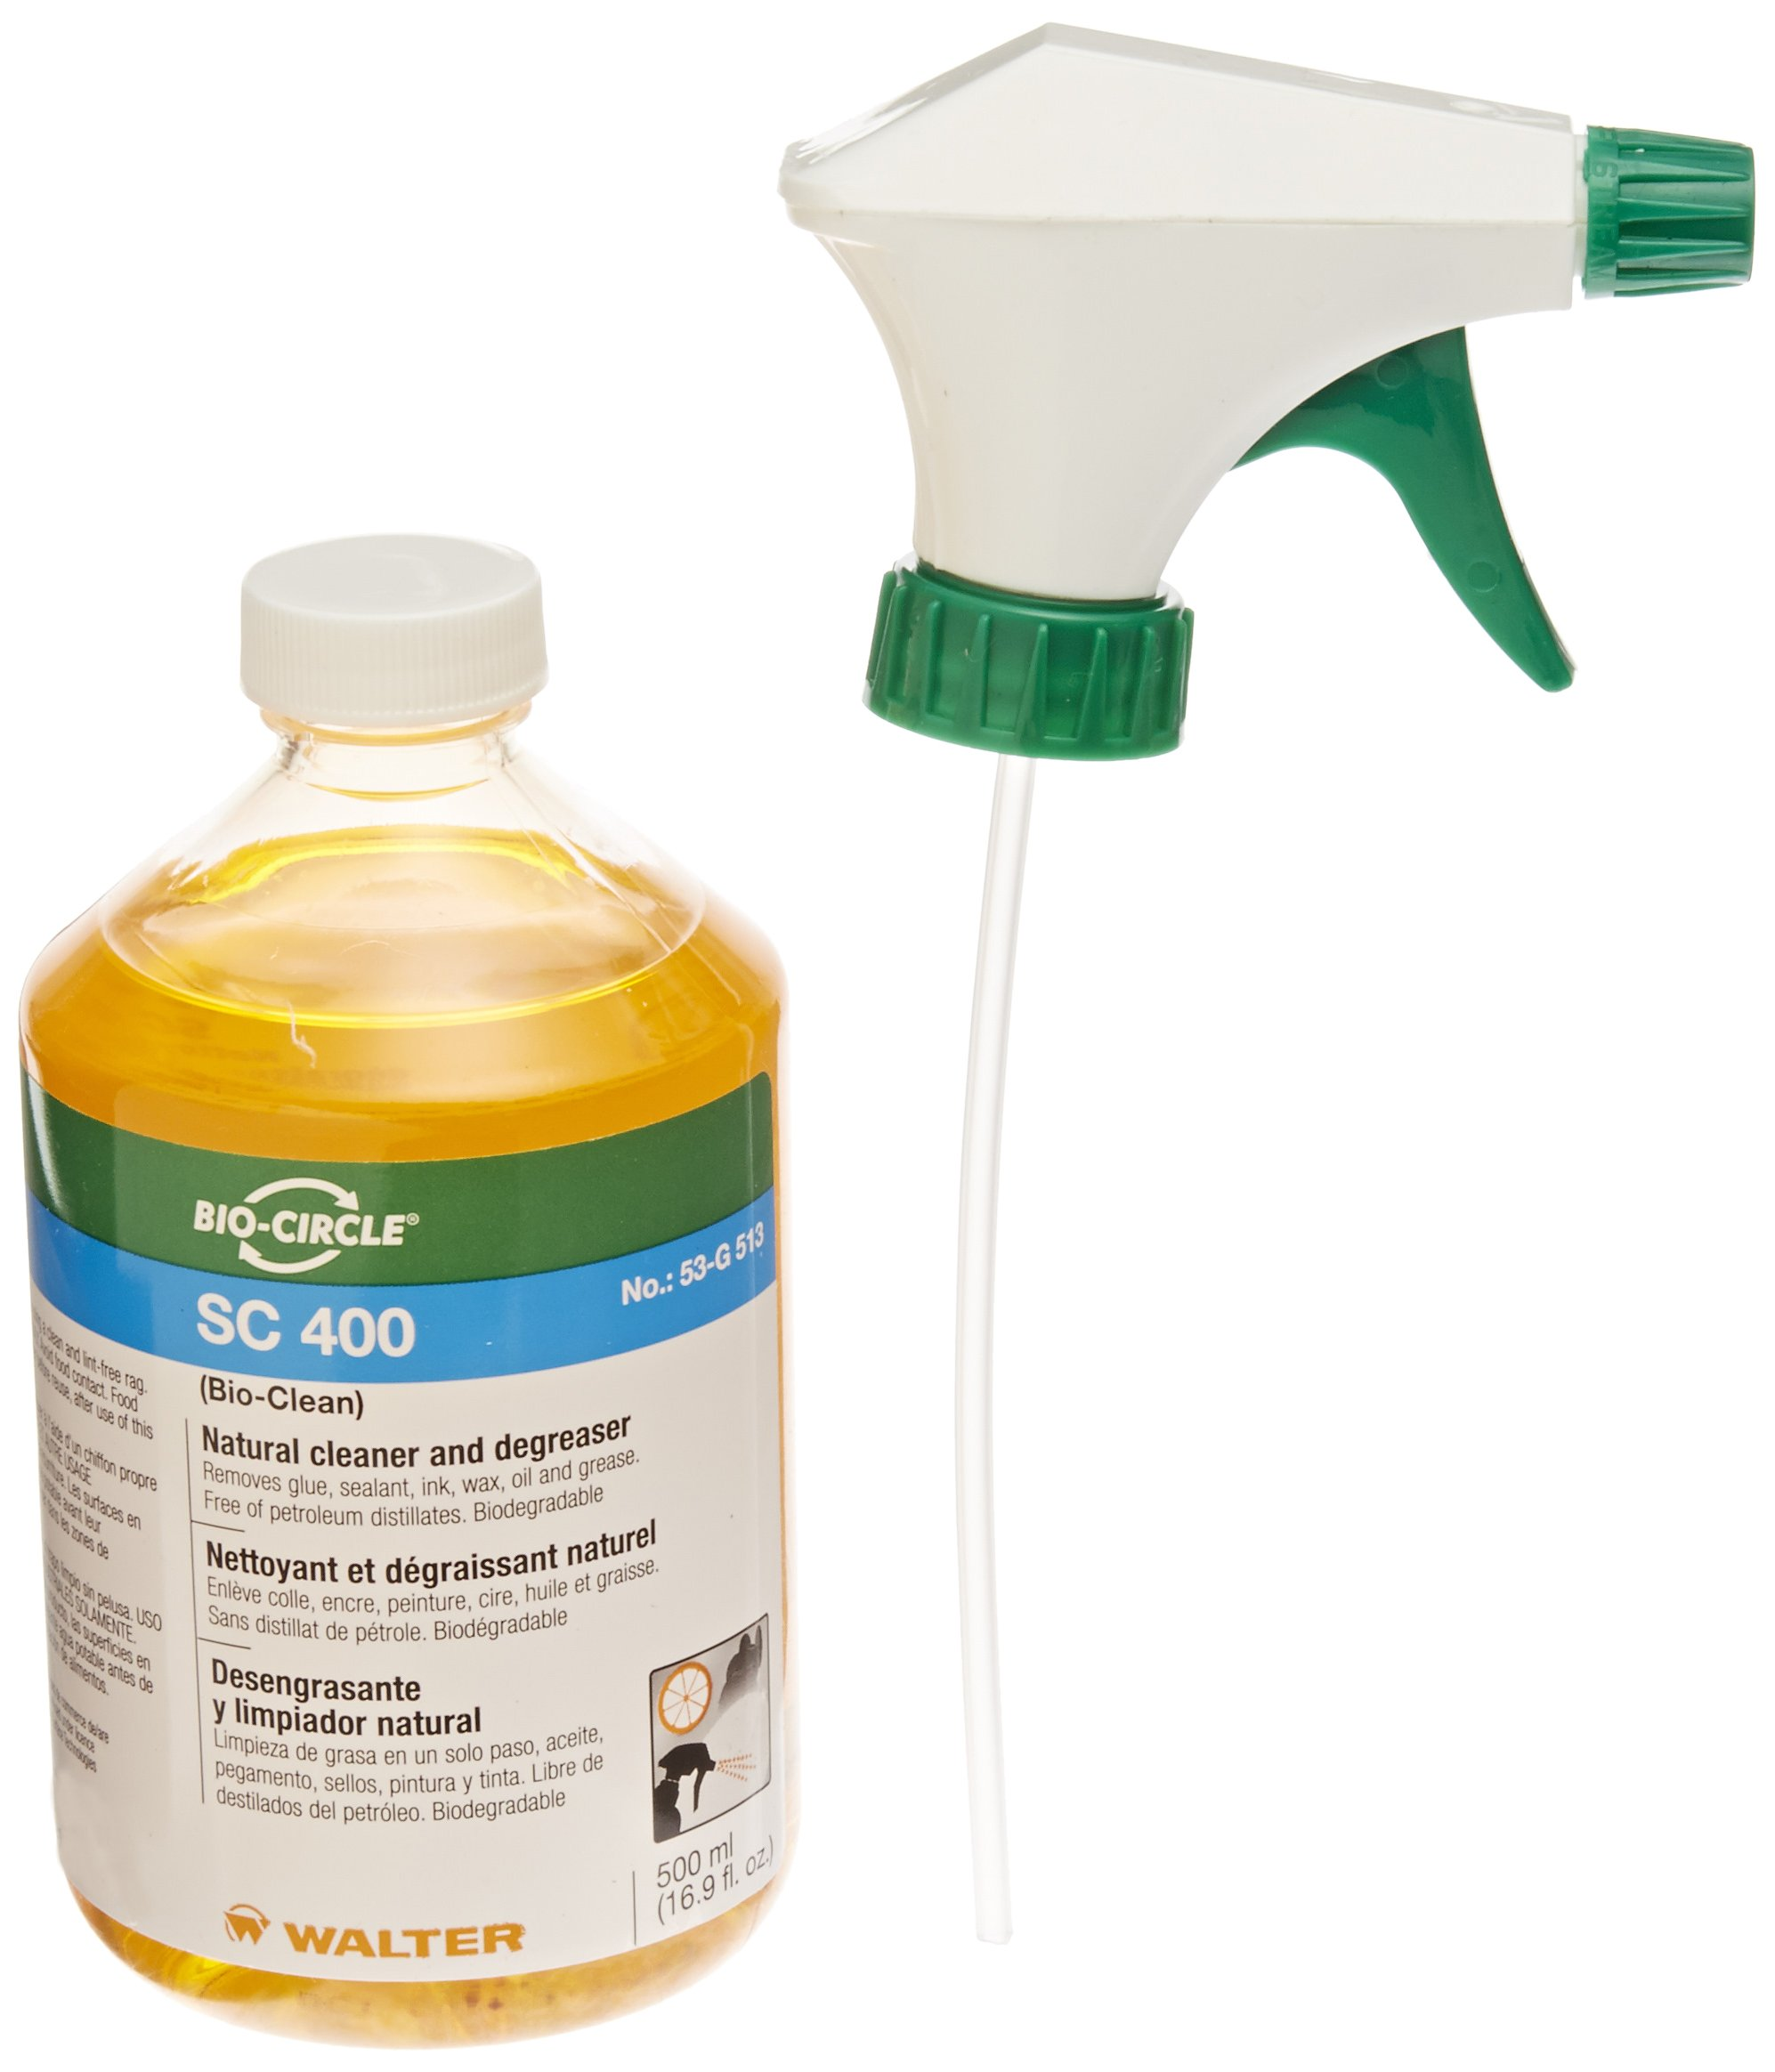 Bio-Circle 53G513 SC400 Spray, 500 mL by Bio-Circle (Image #2)